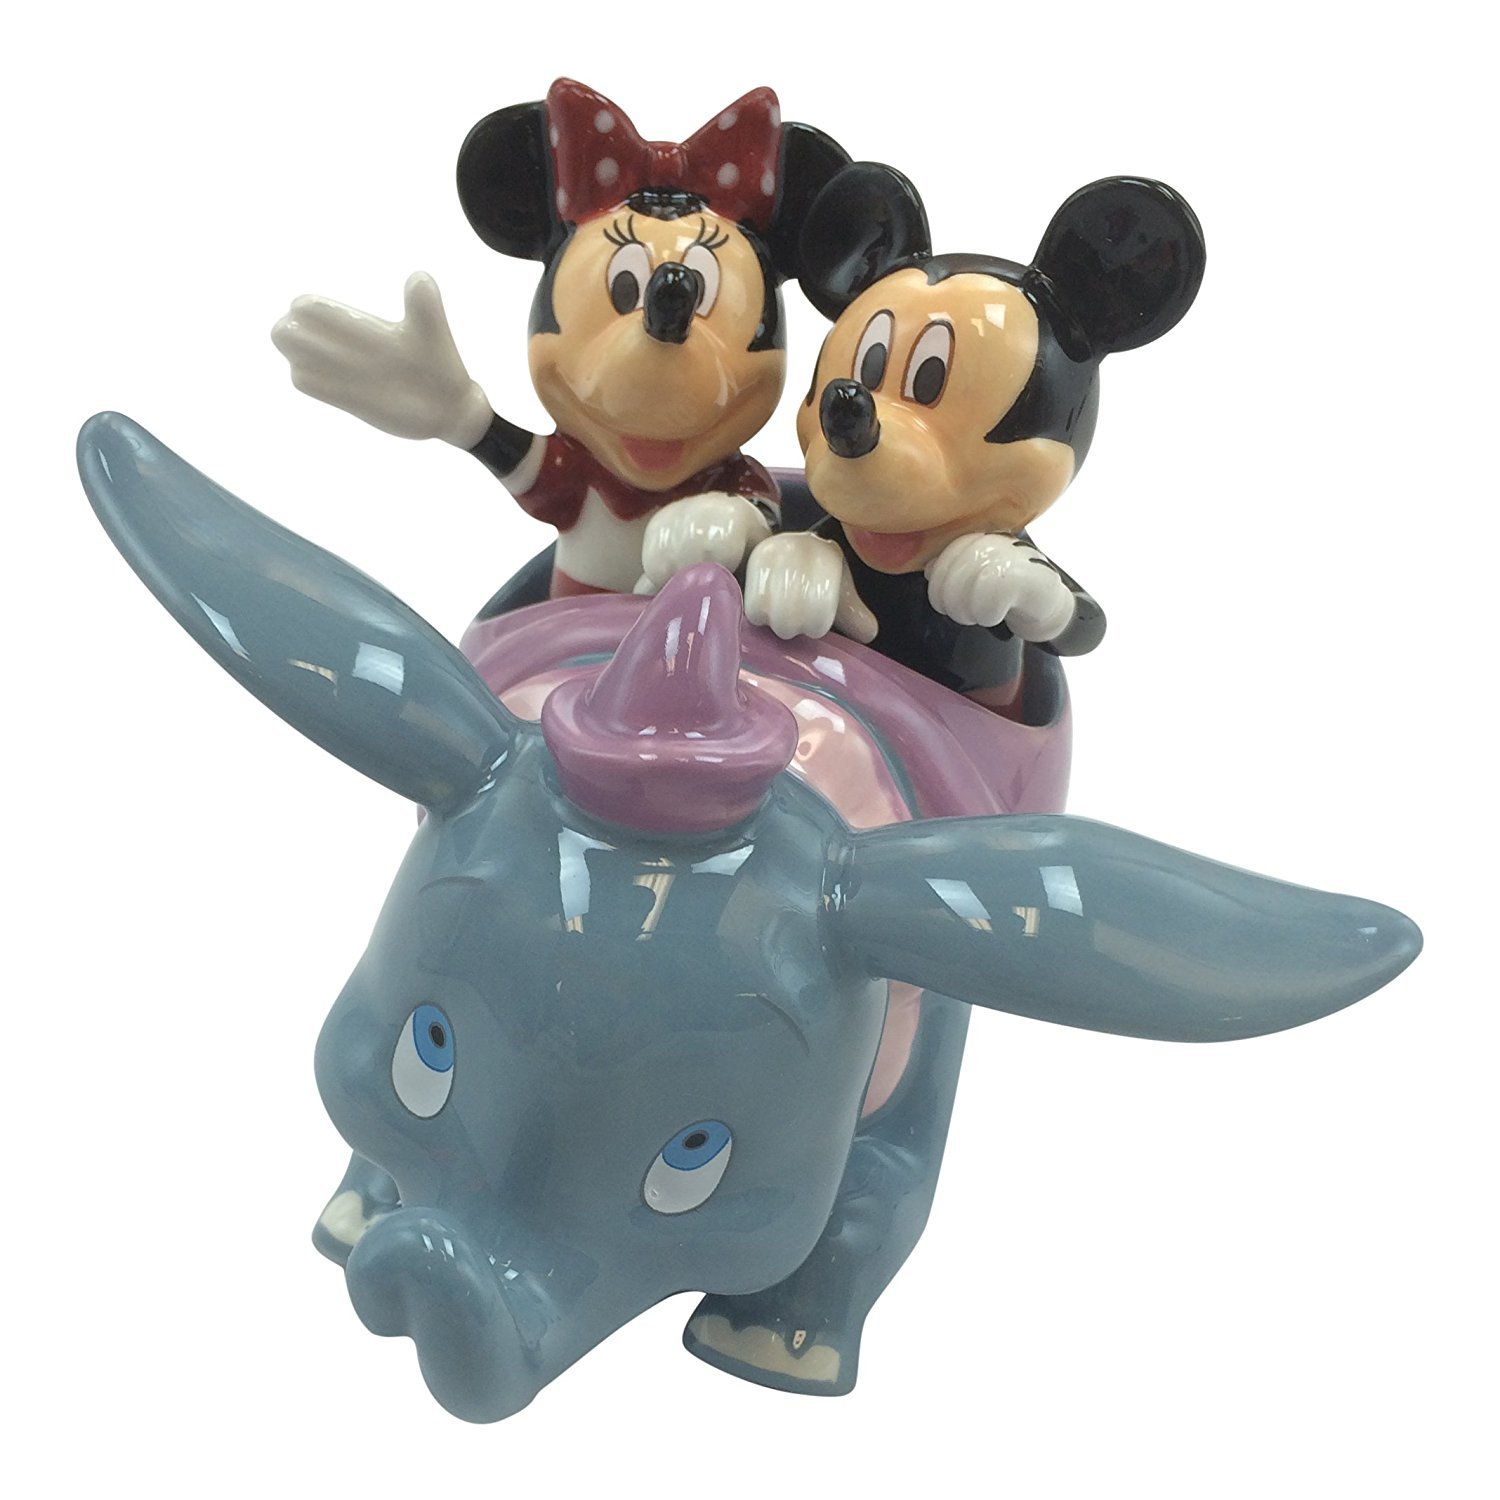 Disney Parks Mickey Minnie Mouse Dumbo Flying Elephant Ride Figurine Salt Pepper Shakers by Disney